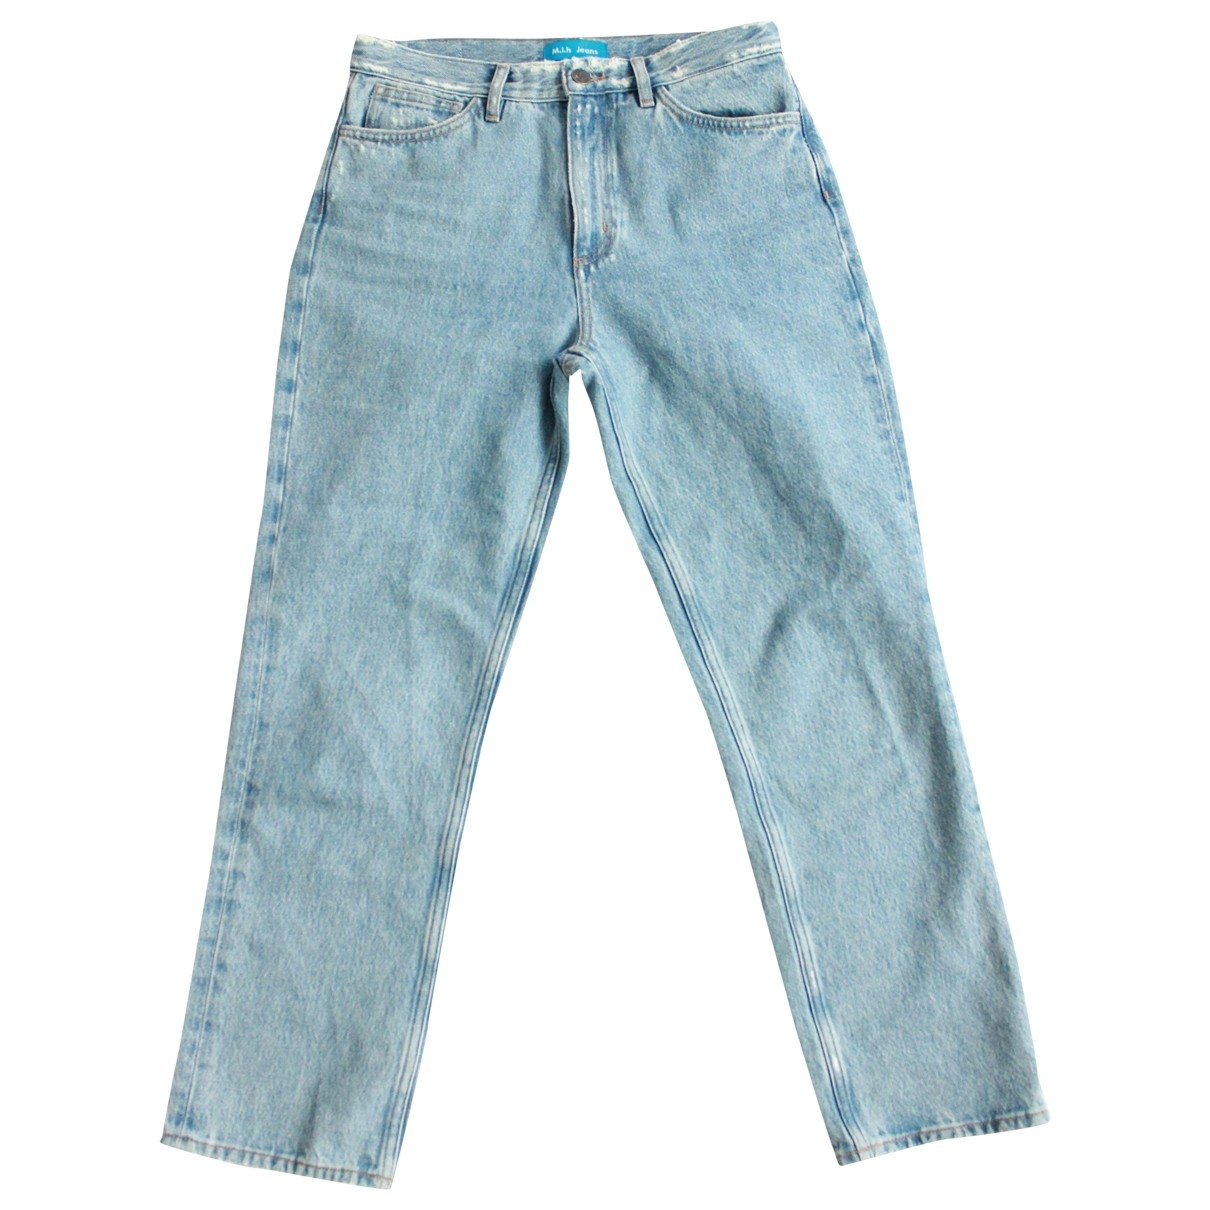 Mih Jeans \N Blue Denim - Jeans Trousers for Women 8 UK